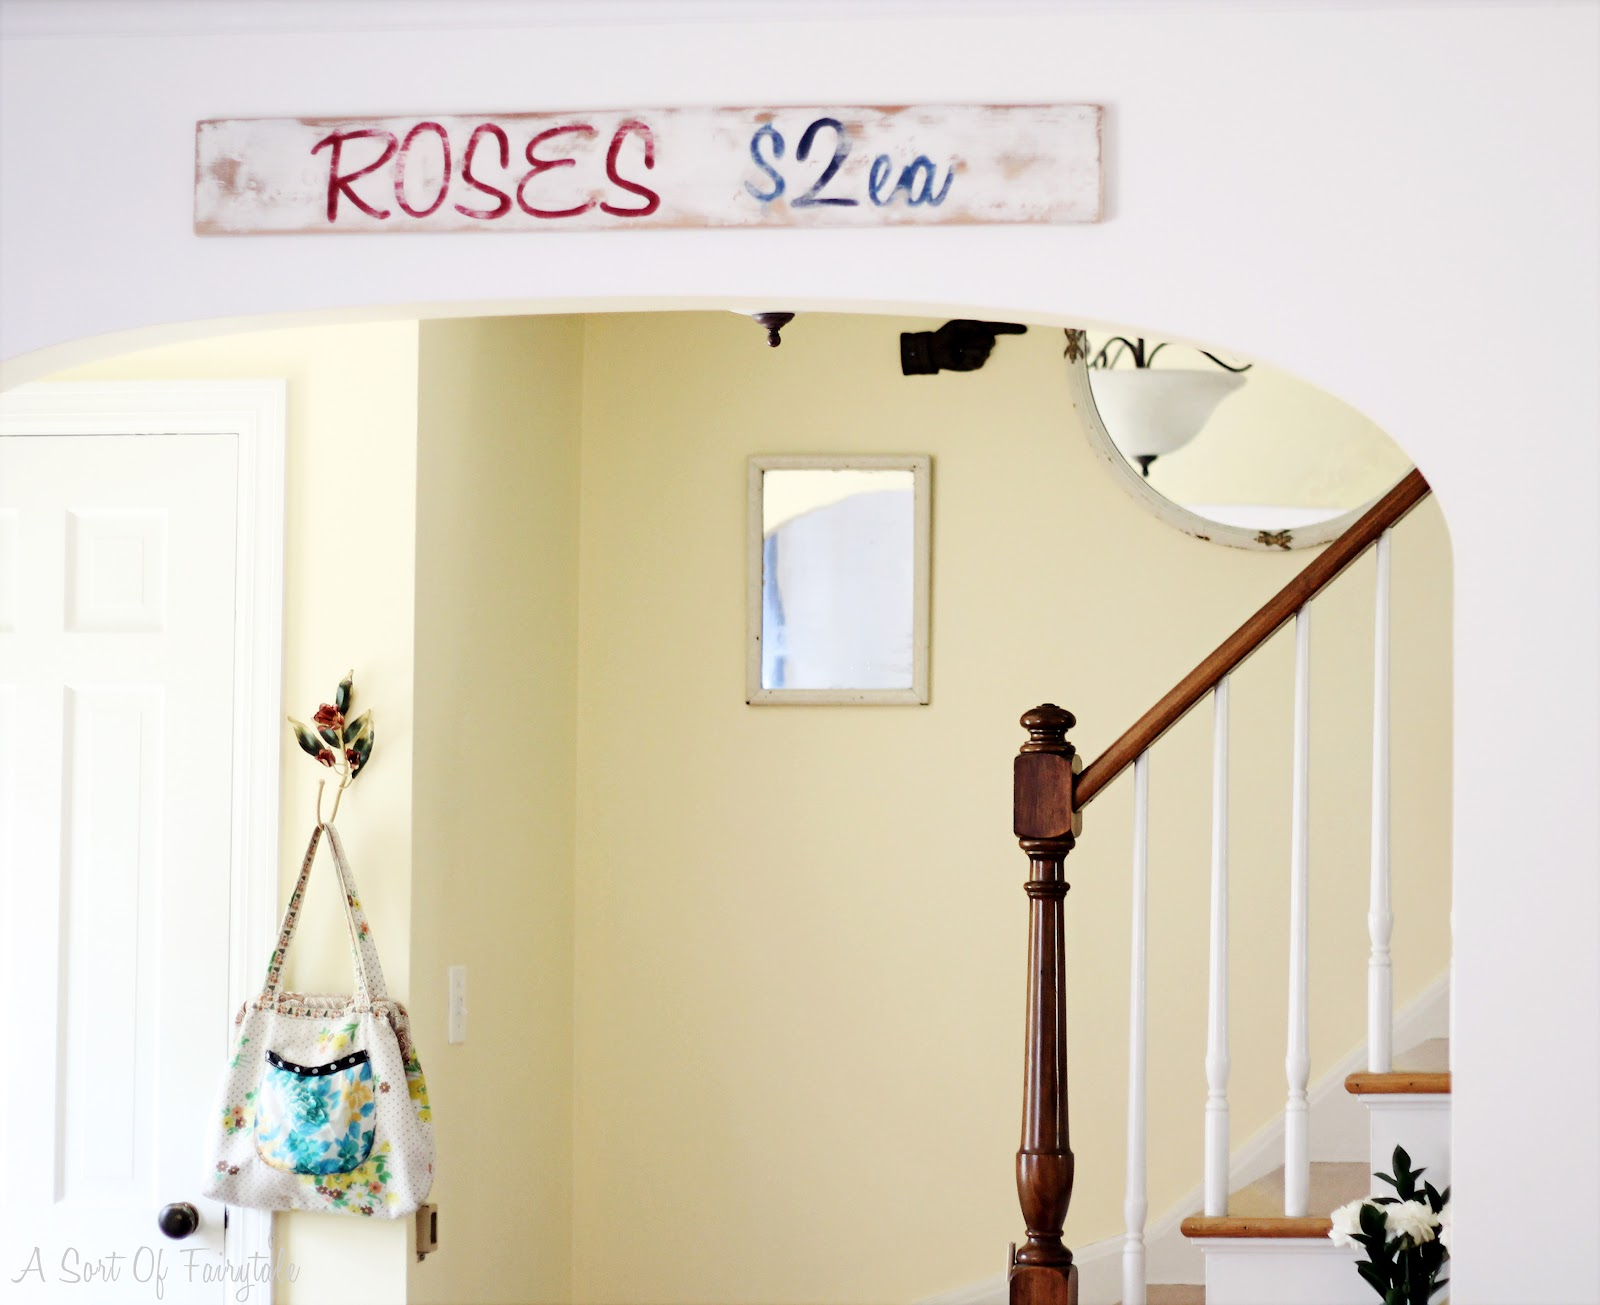 A Sort Of Fairytale: Cottage Style and Color {my home} - New Paint ...